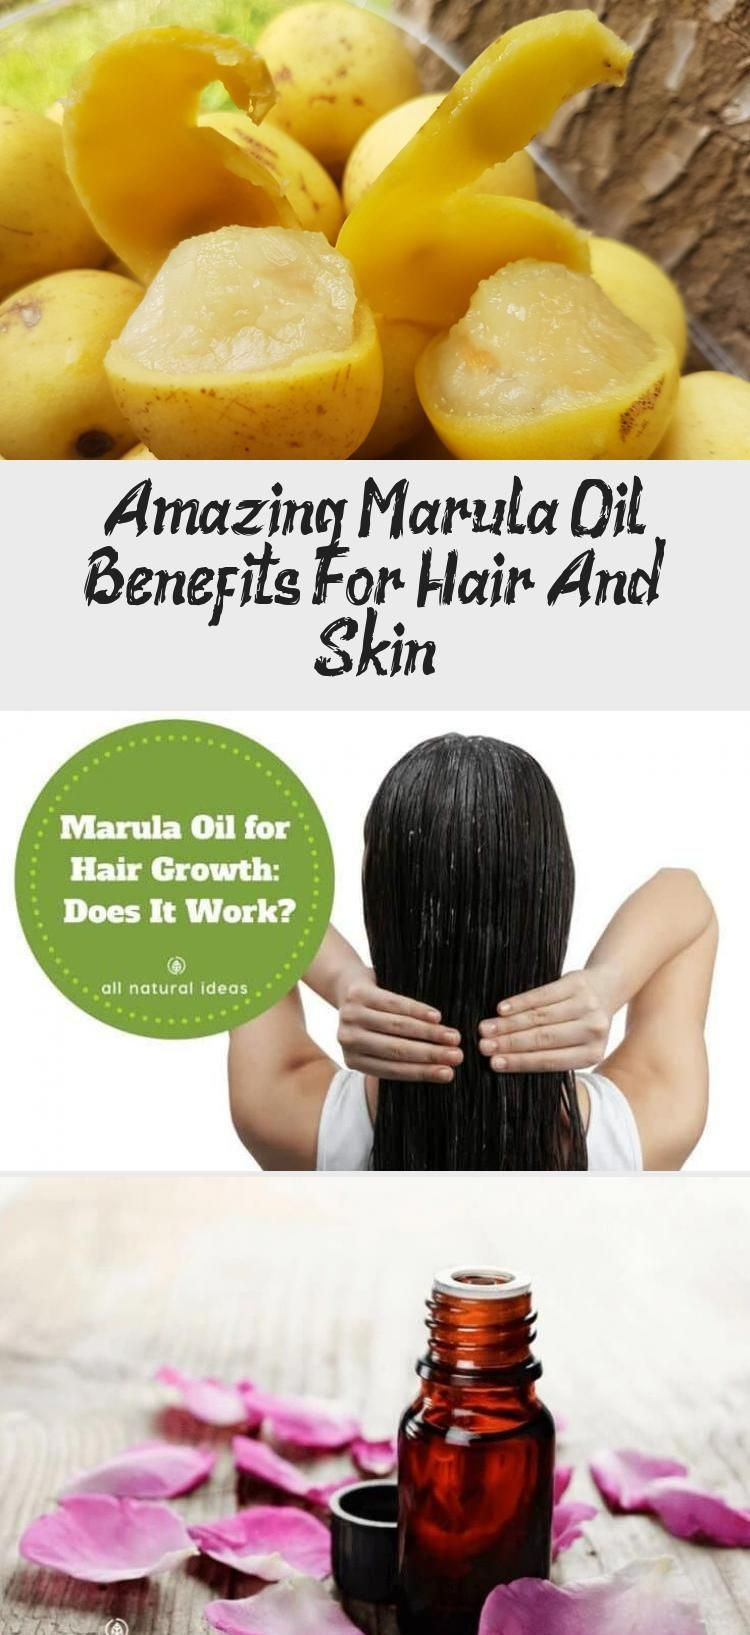 Amazing Marula Oil Benefits For Hair And Skin Using